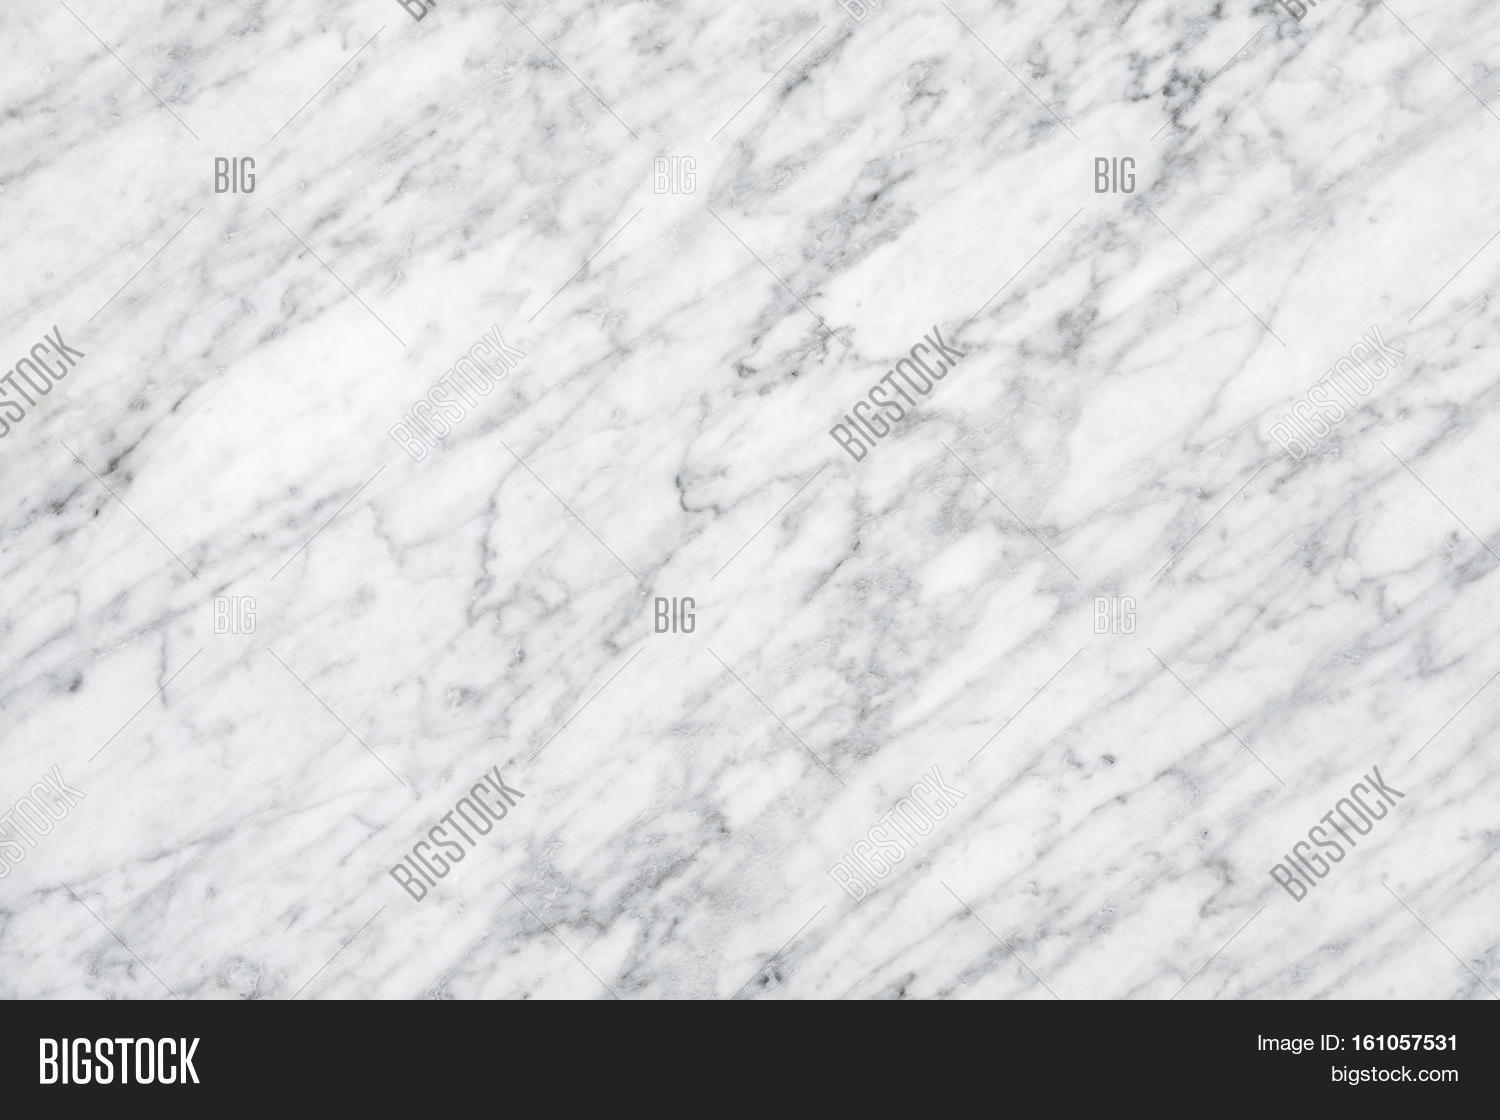 white marble countertops texture. White Carrara Marble Natural Light For Bathroom Or Kitchen Countertop. High Resolution Texture And Countertops .